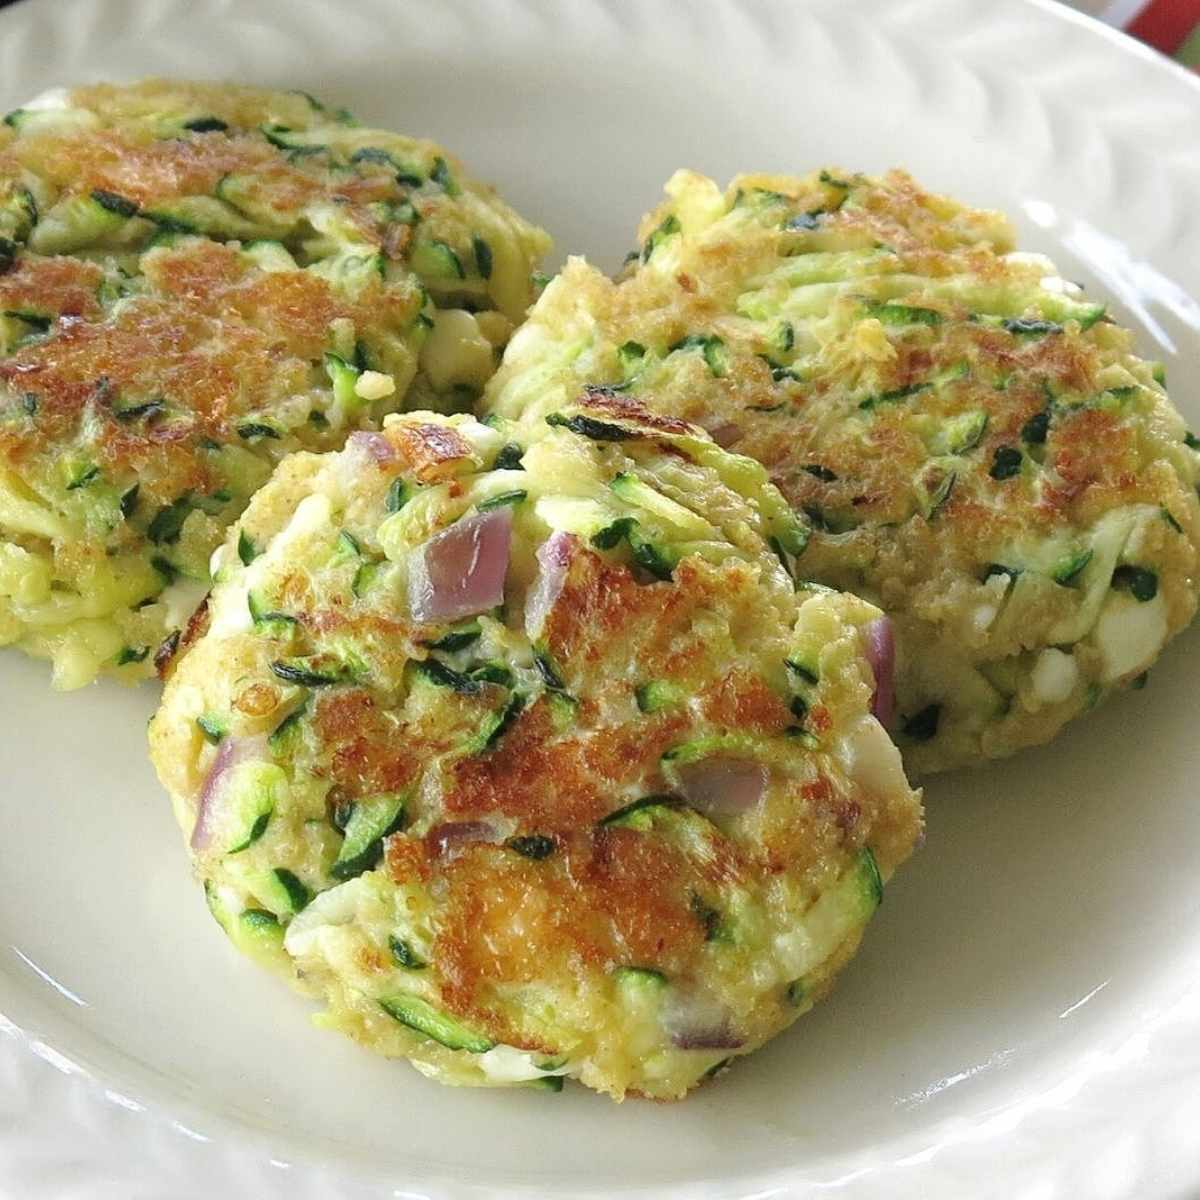 Three zucchini cakes with feta cheese on a plate.